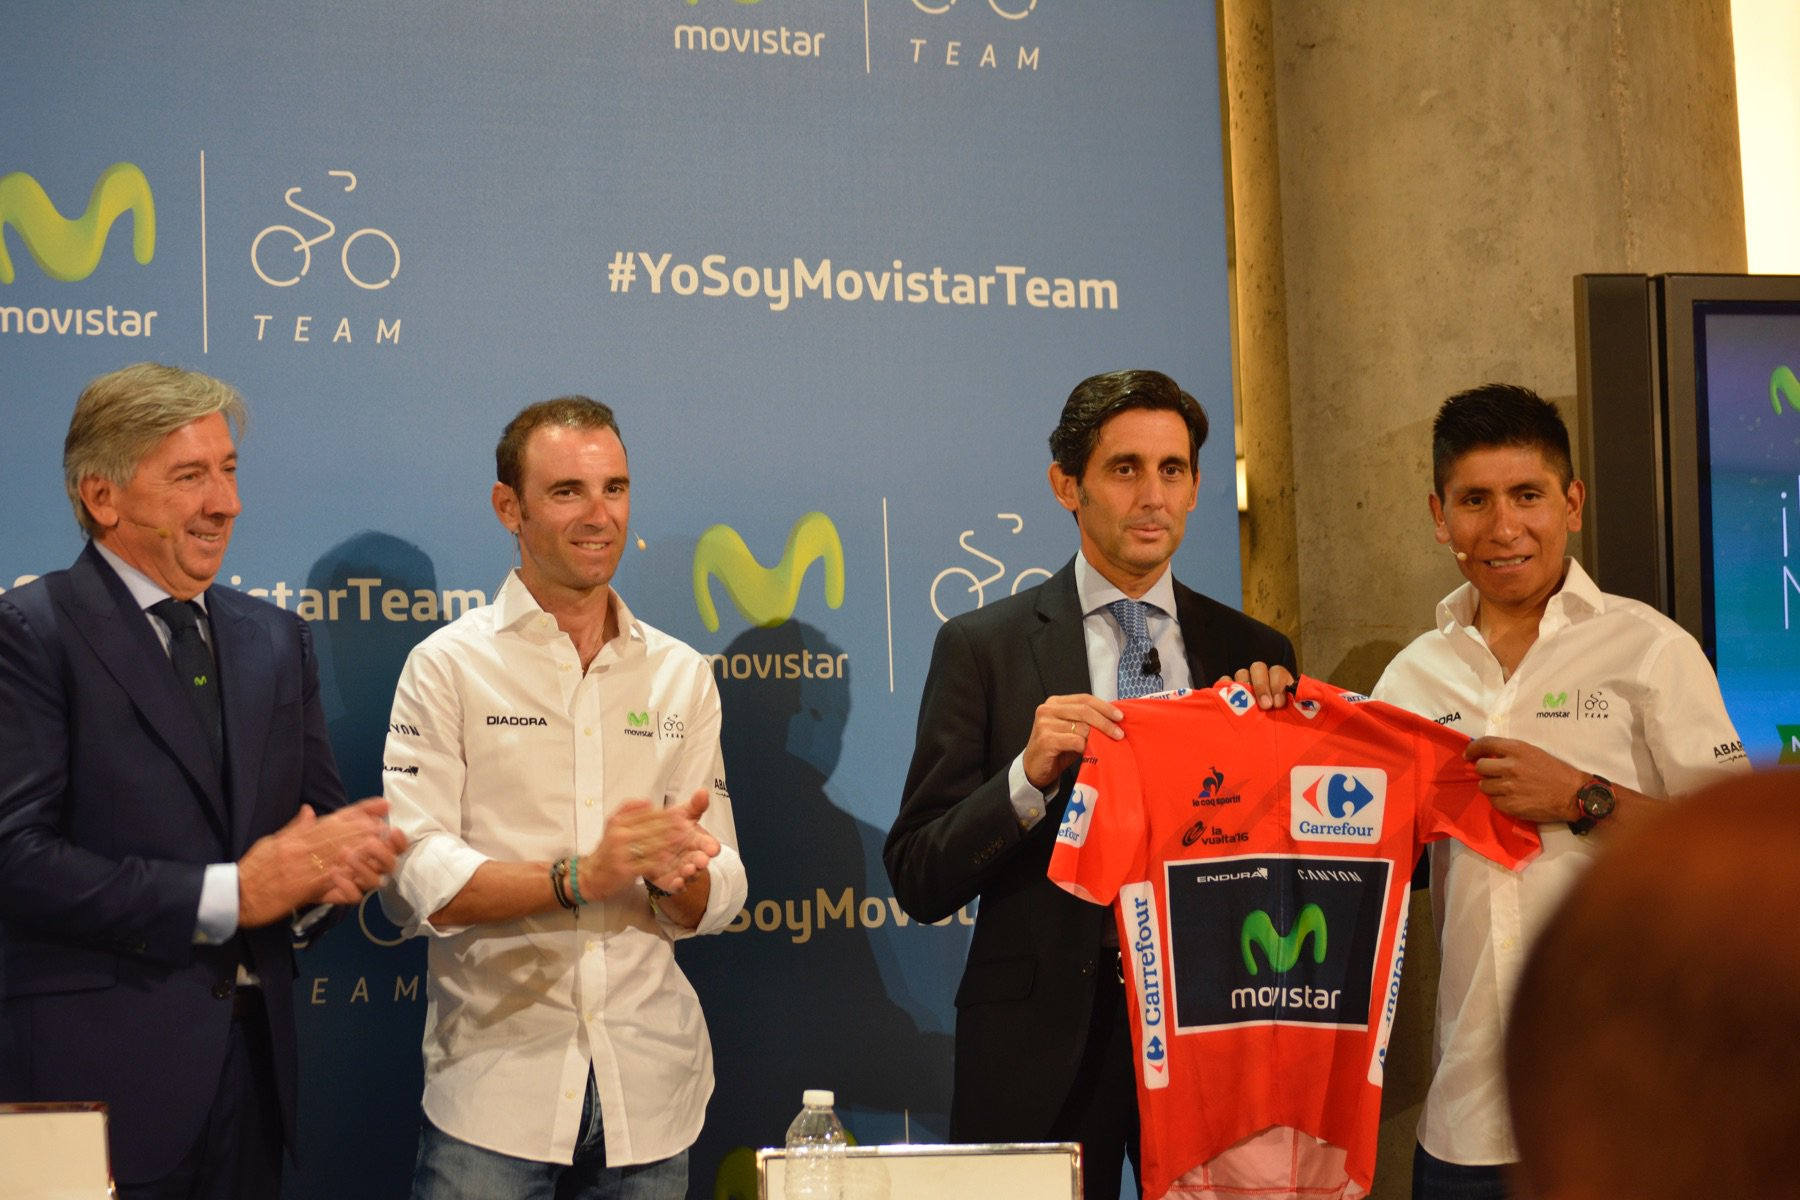 Telefónica patrocinio Movistar Team